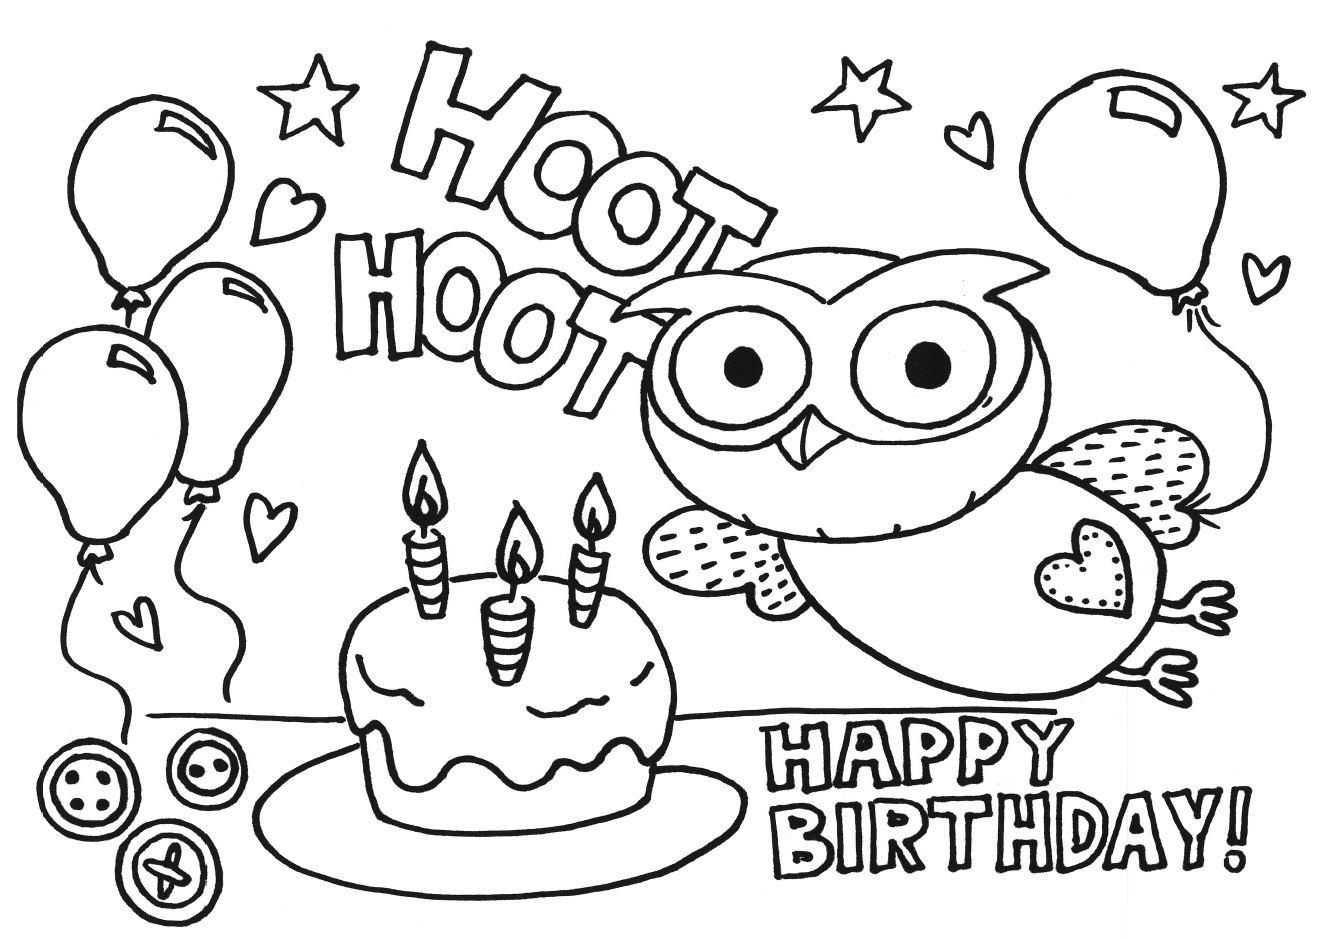 colouring pages for birthday ; birthday-coloring-pages-printable-birthday-sheets-colouring-pages-happy-birthday-printable-coloring-coloring-for-kids-in-happy-birthday-coloring-pages